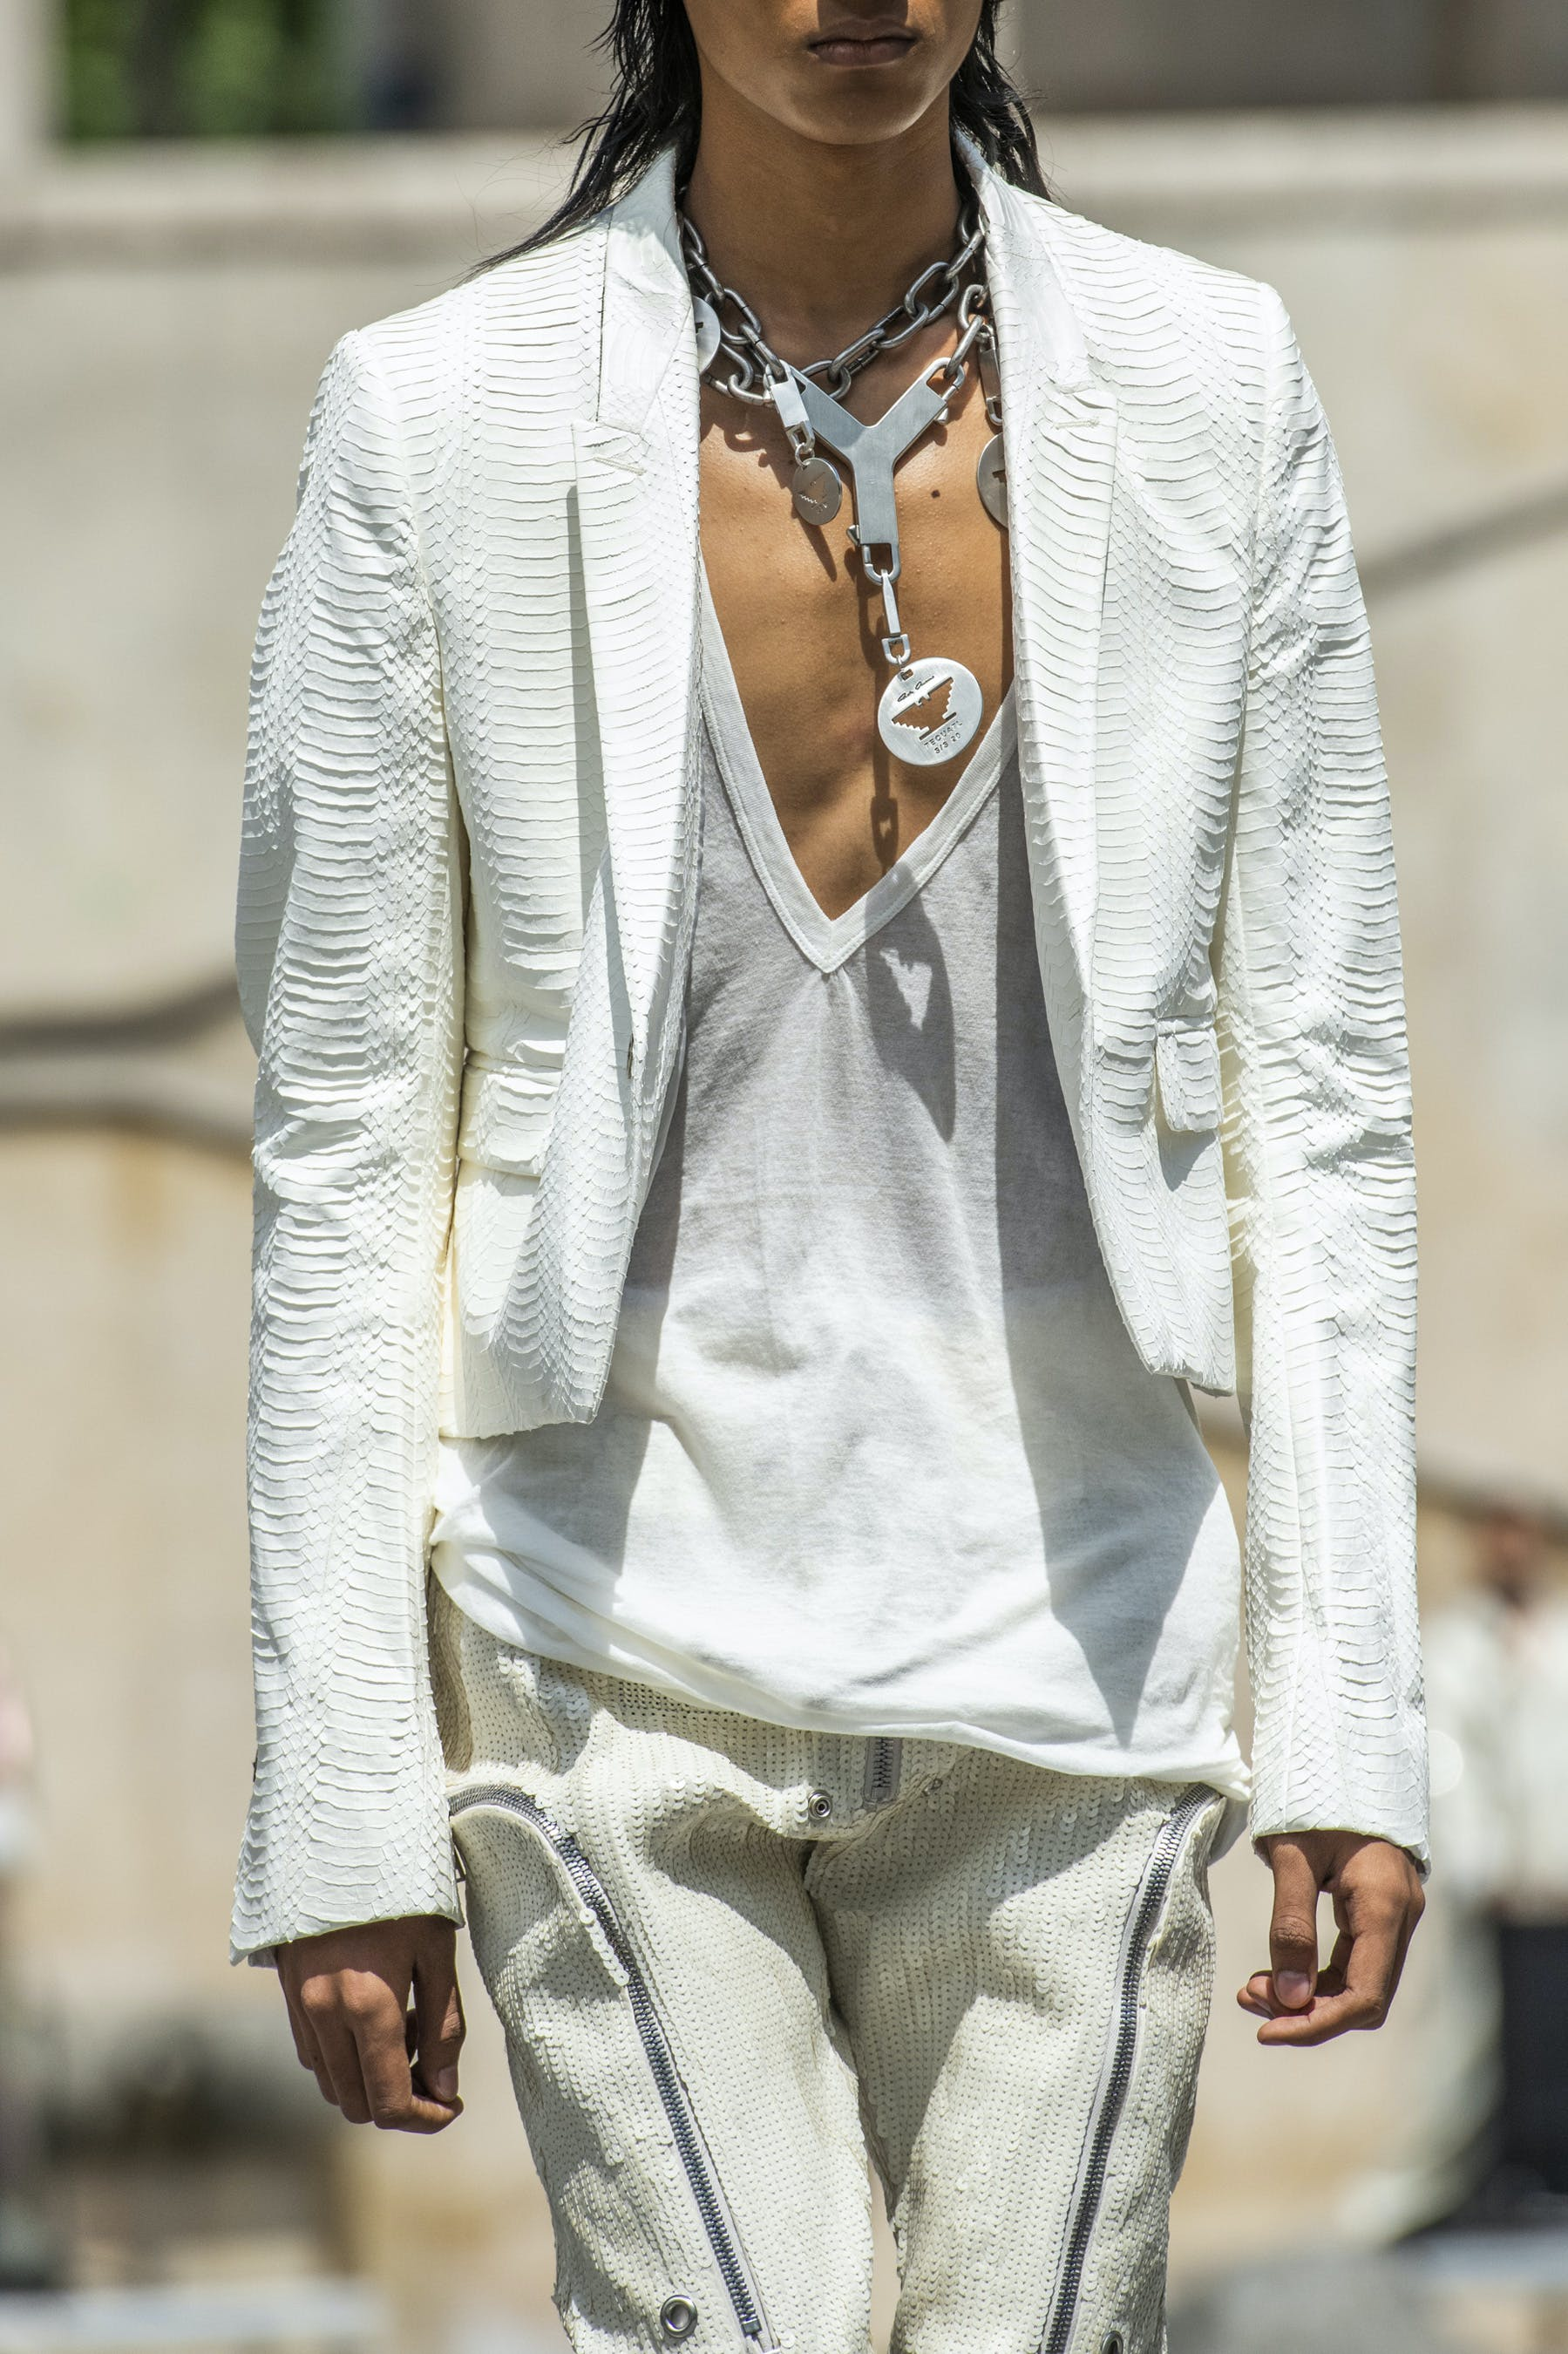 Rick Owens Runway Details Cropped Blazer in White Snake Skin Champion Collaboration V Neck T Shirt  Bauhaus Hand Embroidered Sequins Cargo Pants in White Mens SS20 Tecautl